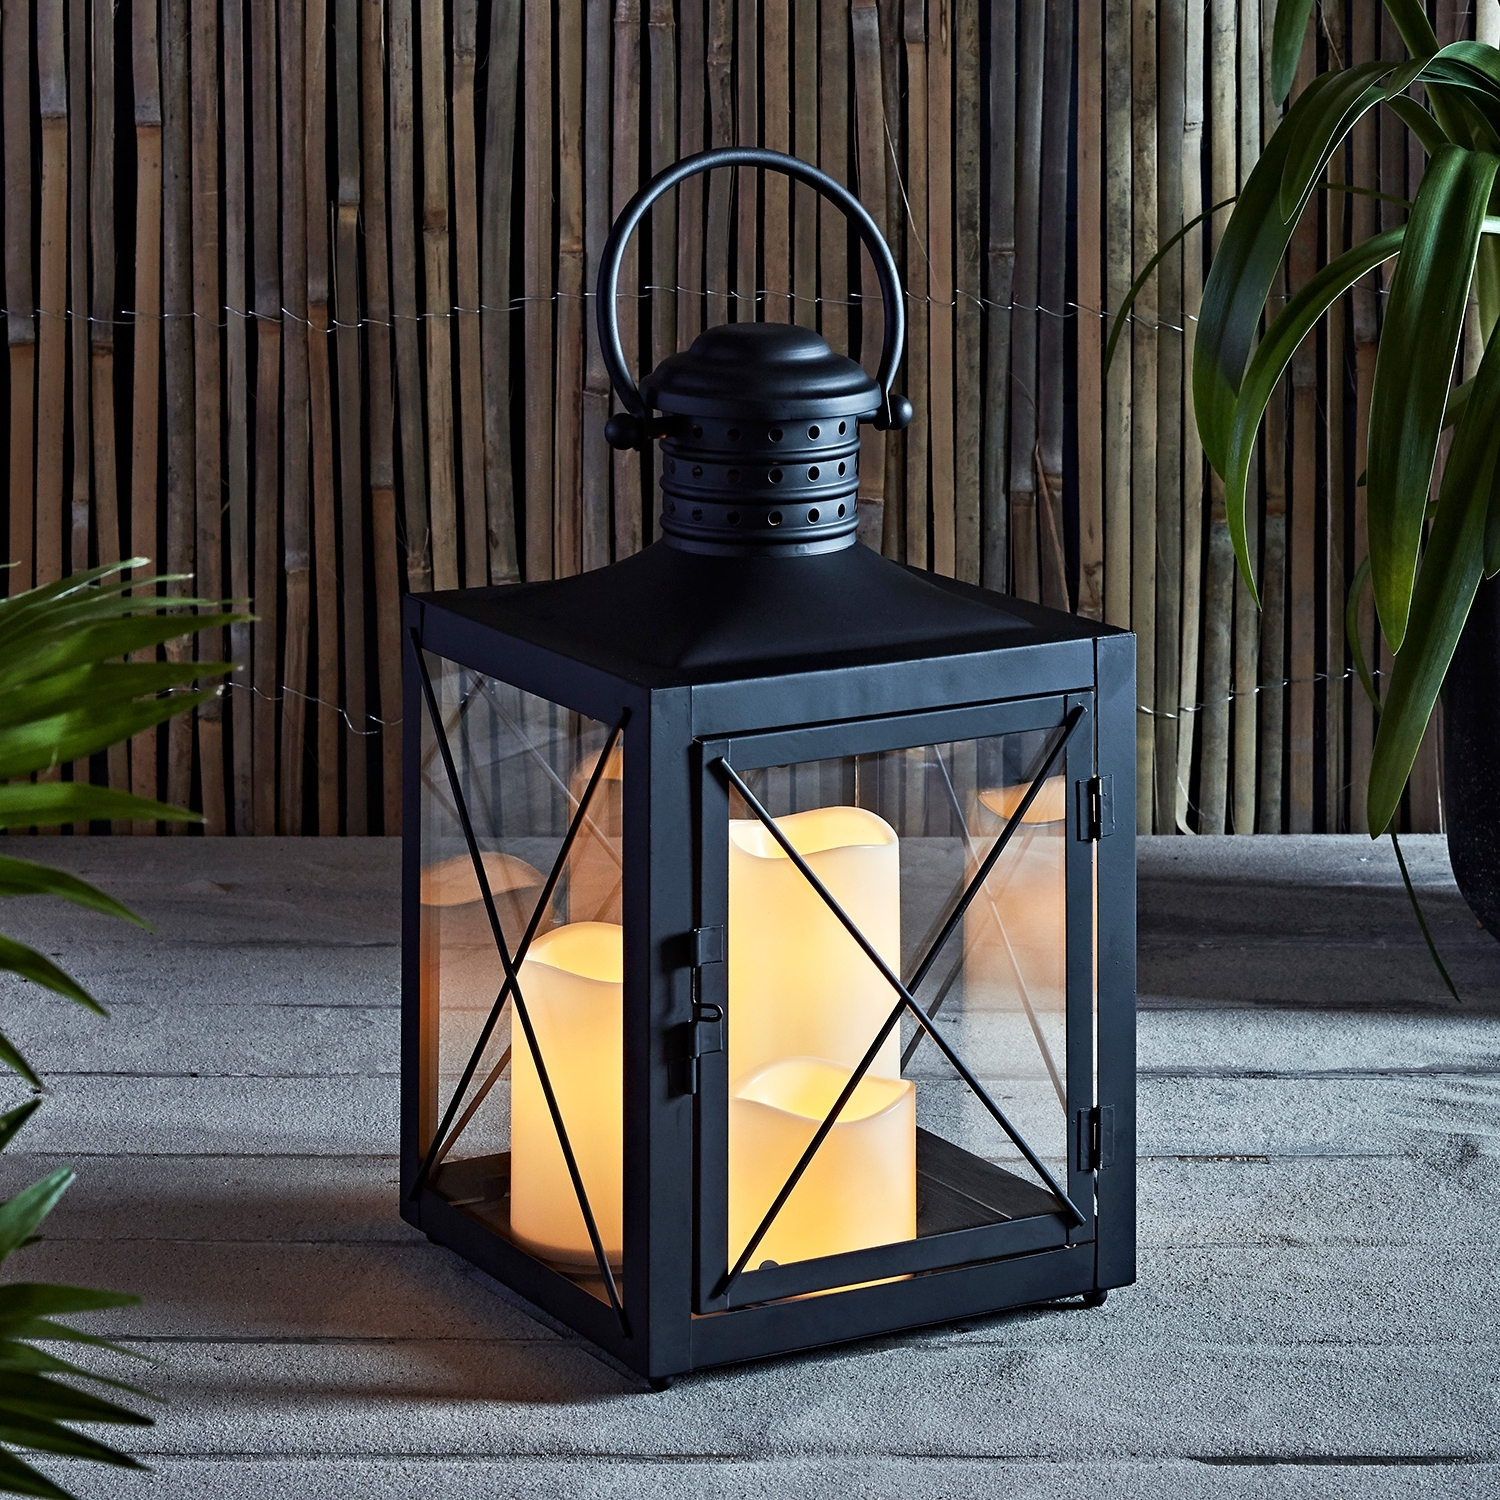 Jumbo Outdoor Lanterns Intended For Best And Newest Lights4Fun, Inc.: Square Black Battery Operated Lantern With 3 (Gallery 11 of 20)